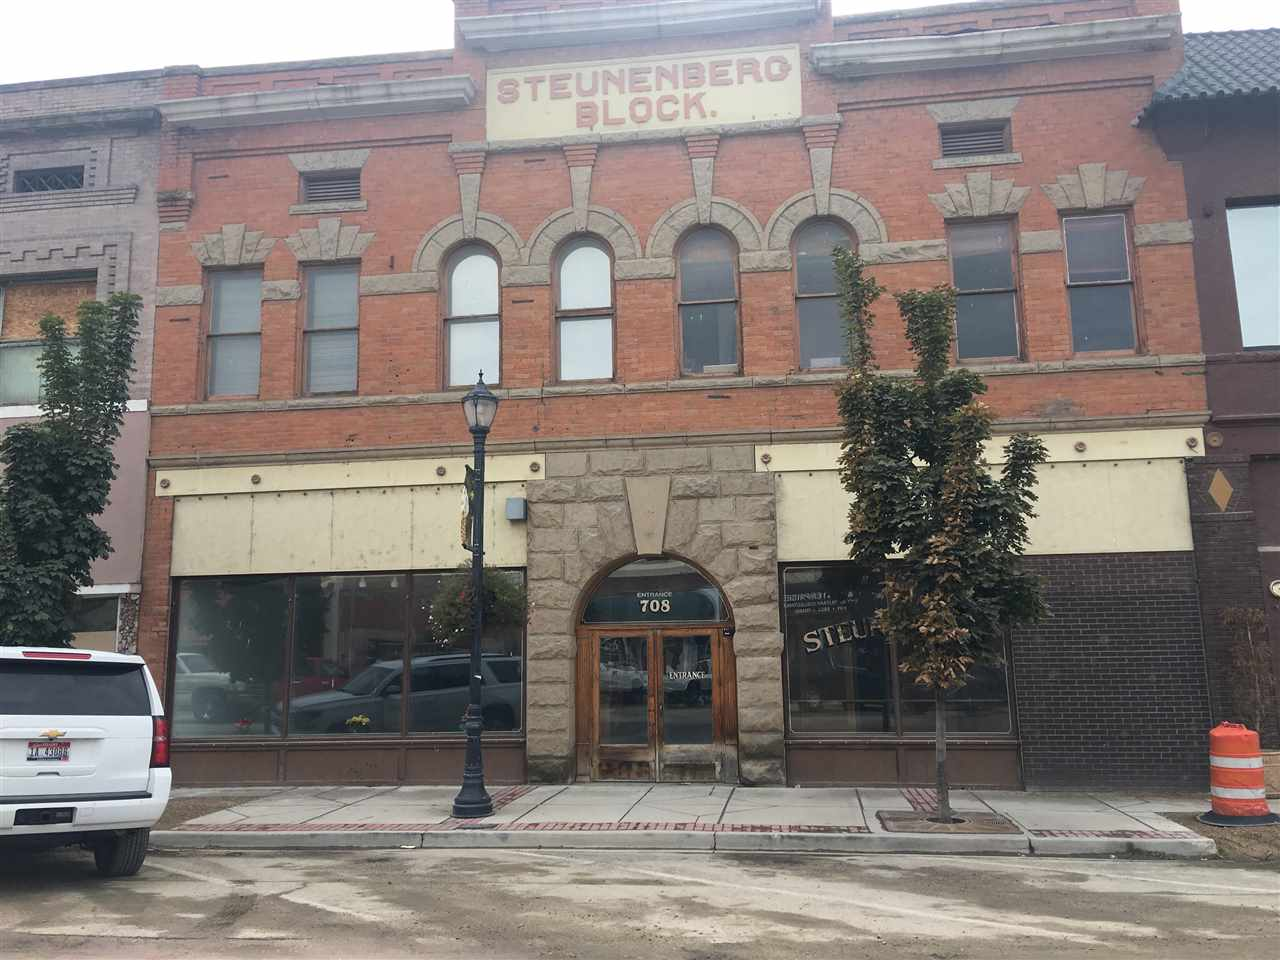 FOR LEASE ONLY, Building not for sale! Seller has architectural drawings for renovation on Plaza side of building. The building has total approximate 12,000 sq ft,  6000 sq. ft. main level and 6000 sq.ft. upper level. Can have more than one tenant on each floor. Owner is open to dividing spaces to fit your needs. Past uses attorney offices, counselors, art gallery. What do you want to bring to Caldwell, restaurant, retail, offices, event center? NNN Lease including pro-rata portion of common area per floor.